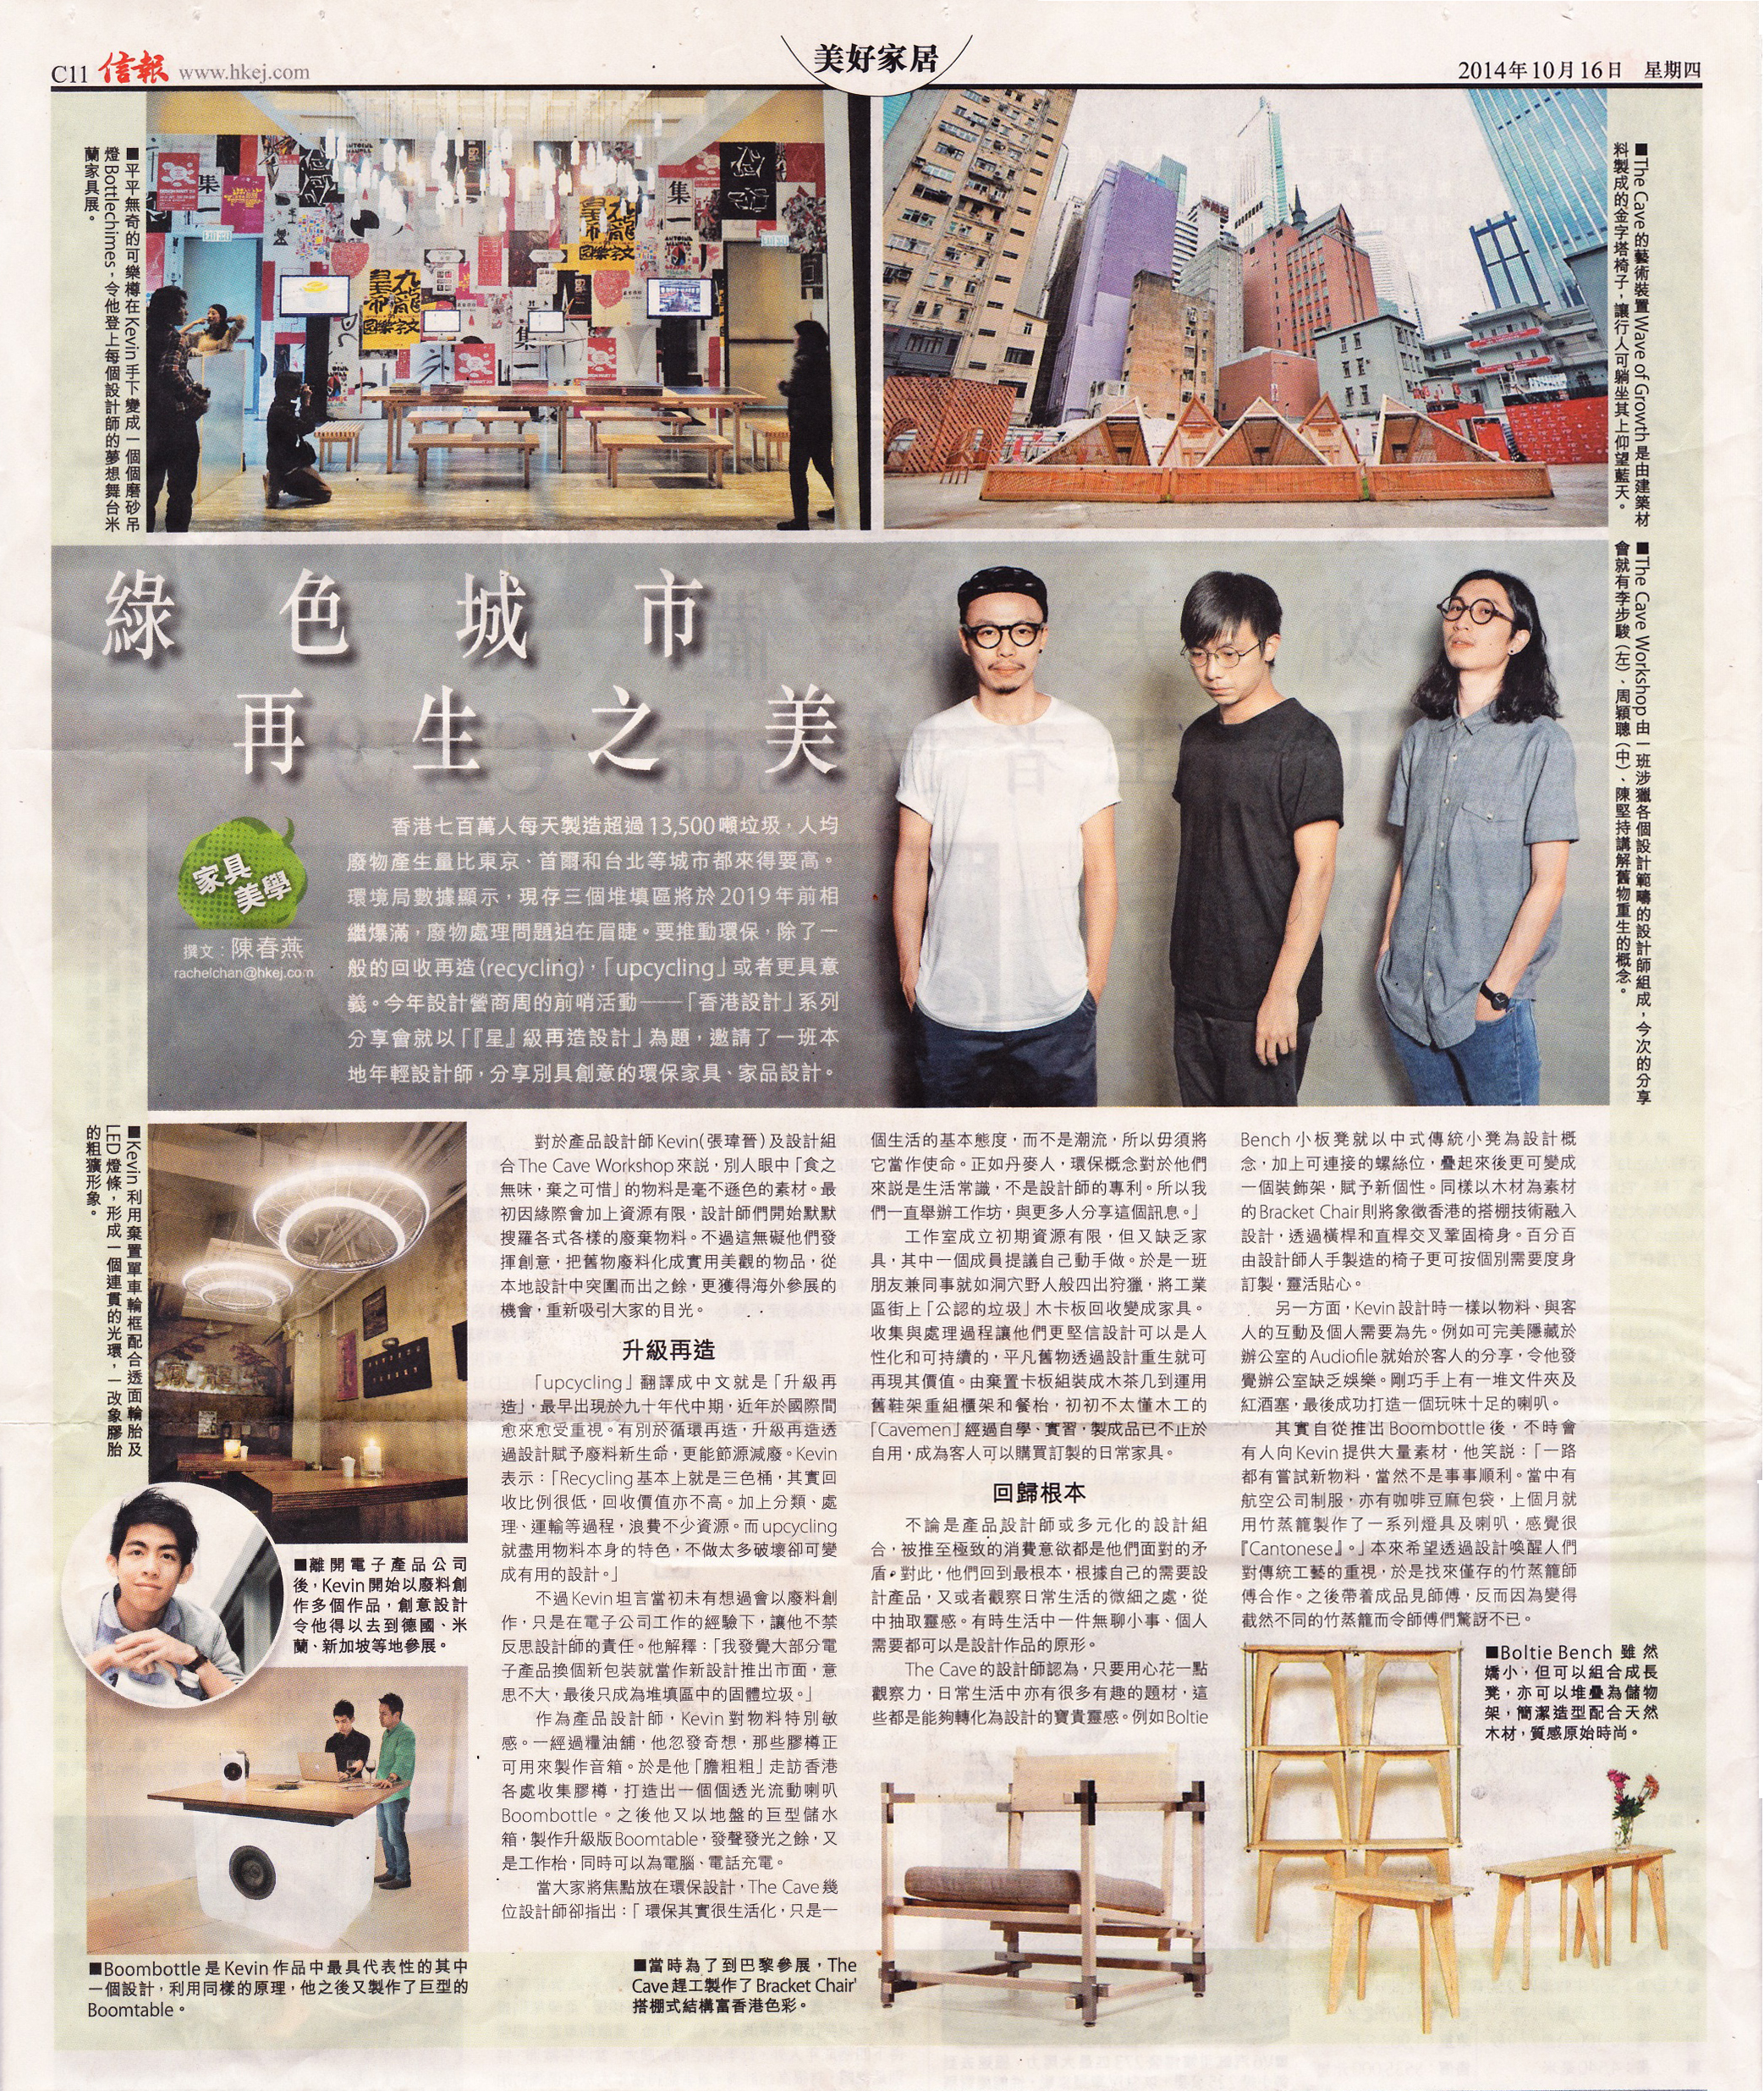 141016 Economic Journal.jpg